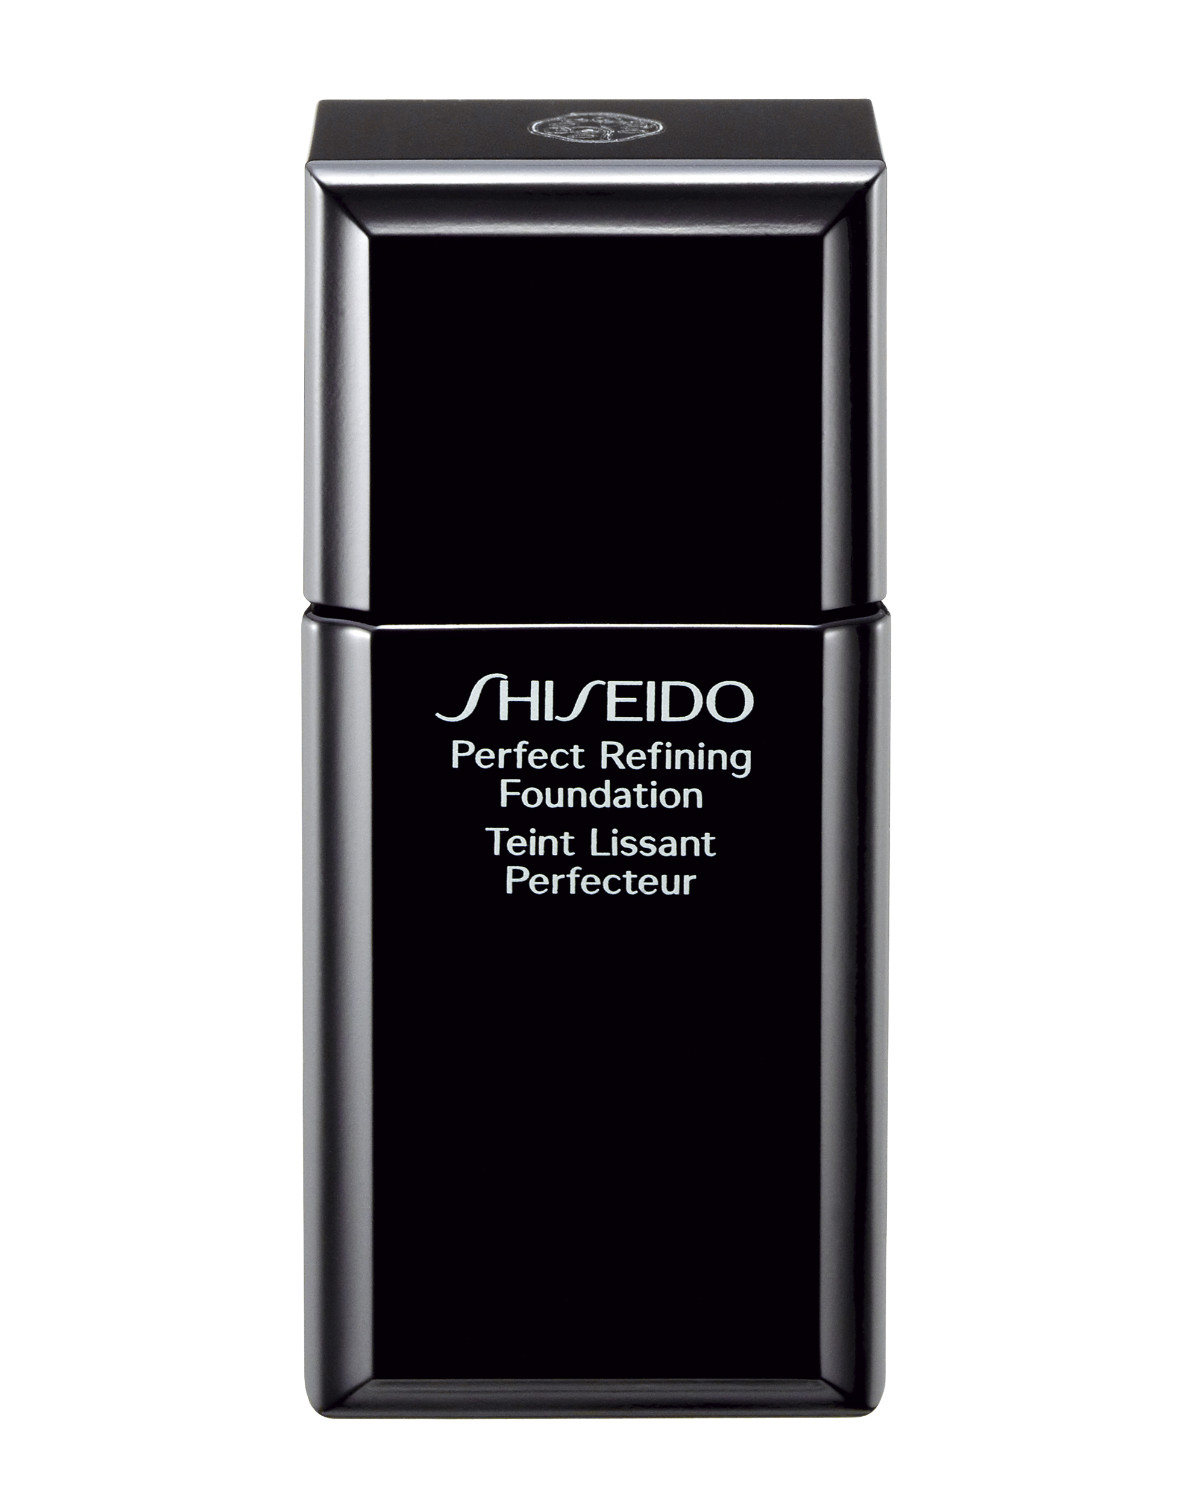 clairemakeupstudio review shiseido perfect refining. Black Bedroom Furniture Sets. Home Design Ideas